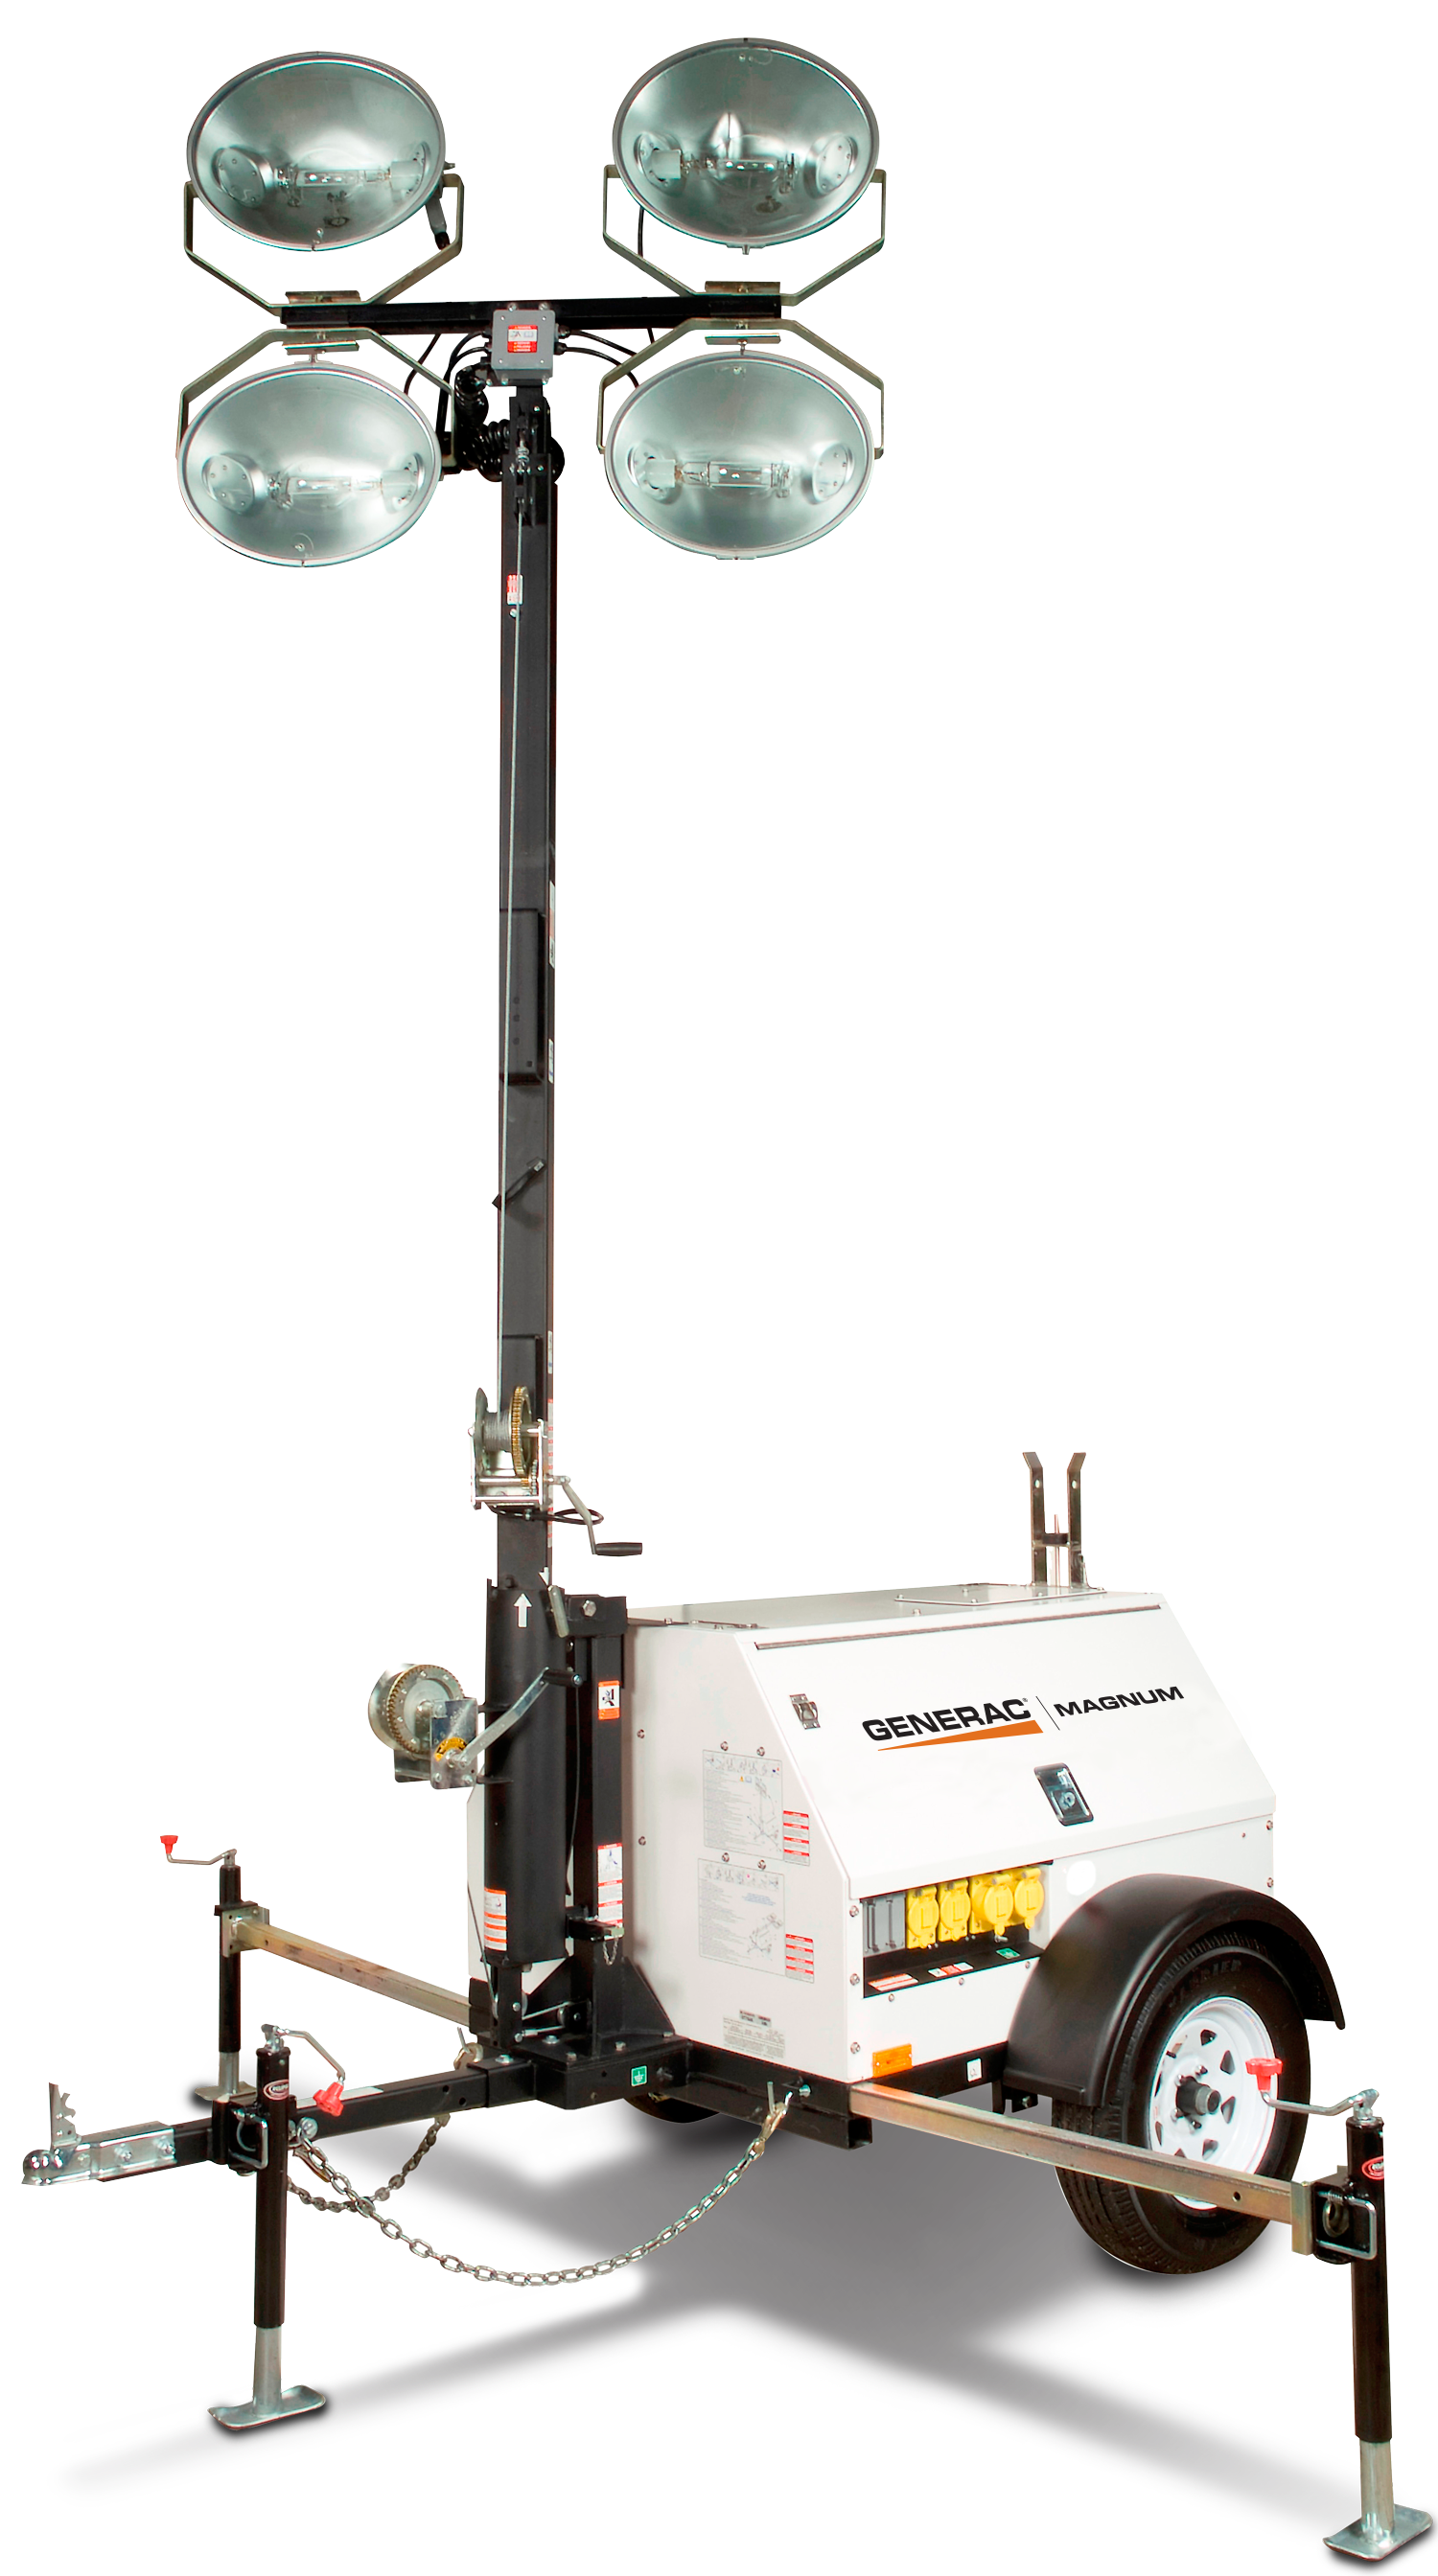 generac mlt4060 mobile metal halide light tower